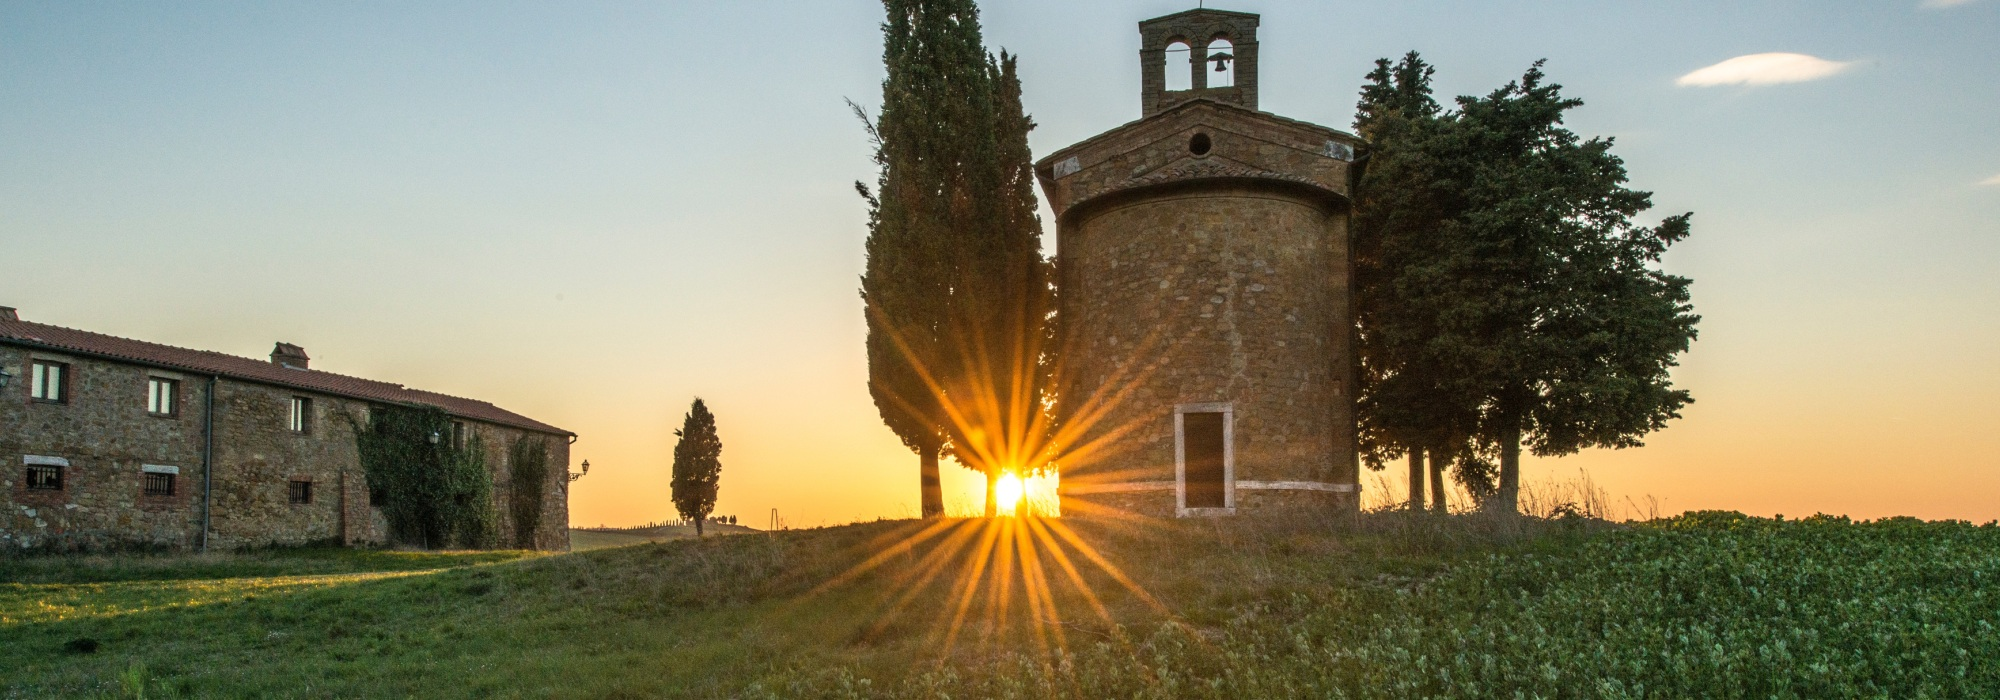 Farm Holidays in Tuscany - Tuscany Family Holiday Podere Monti